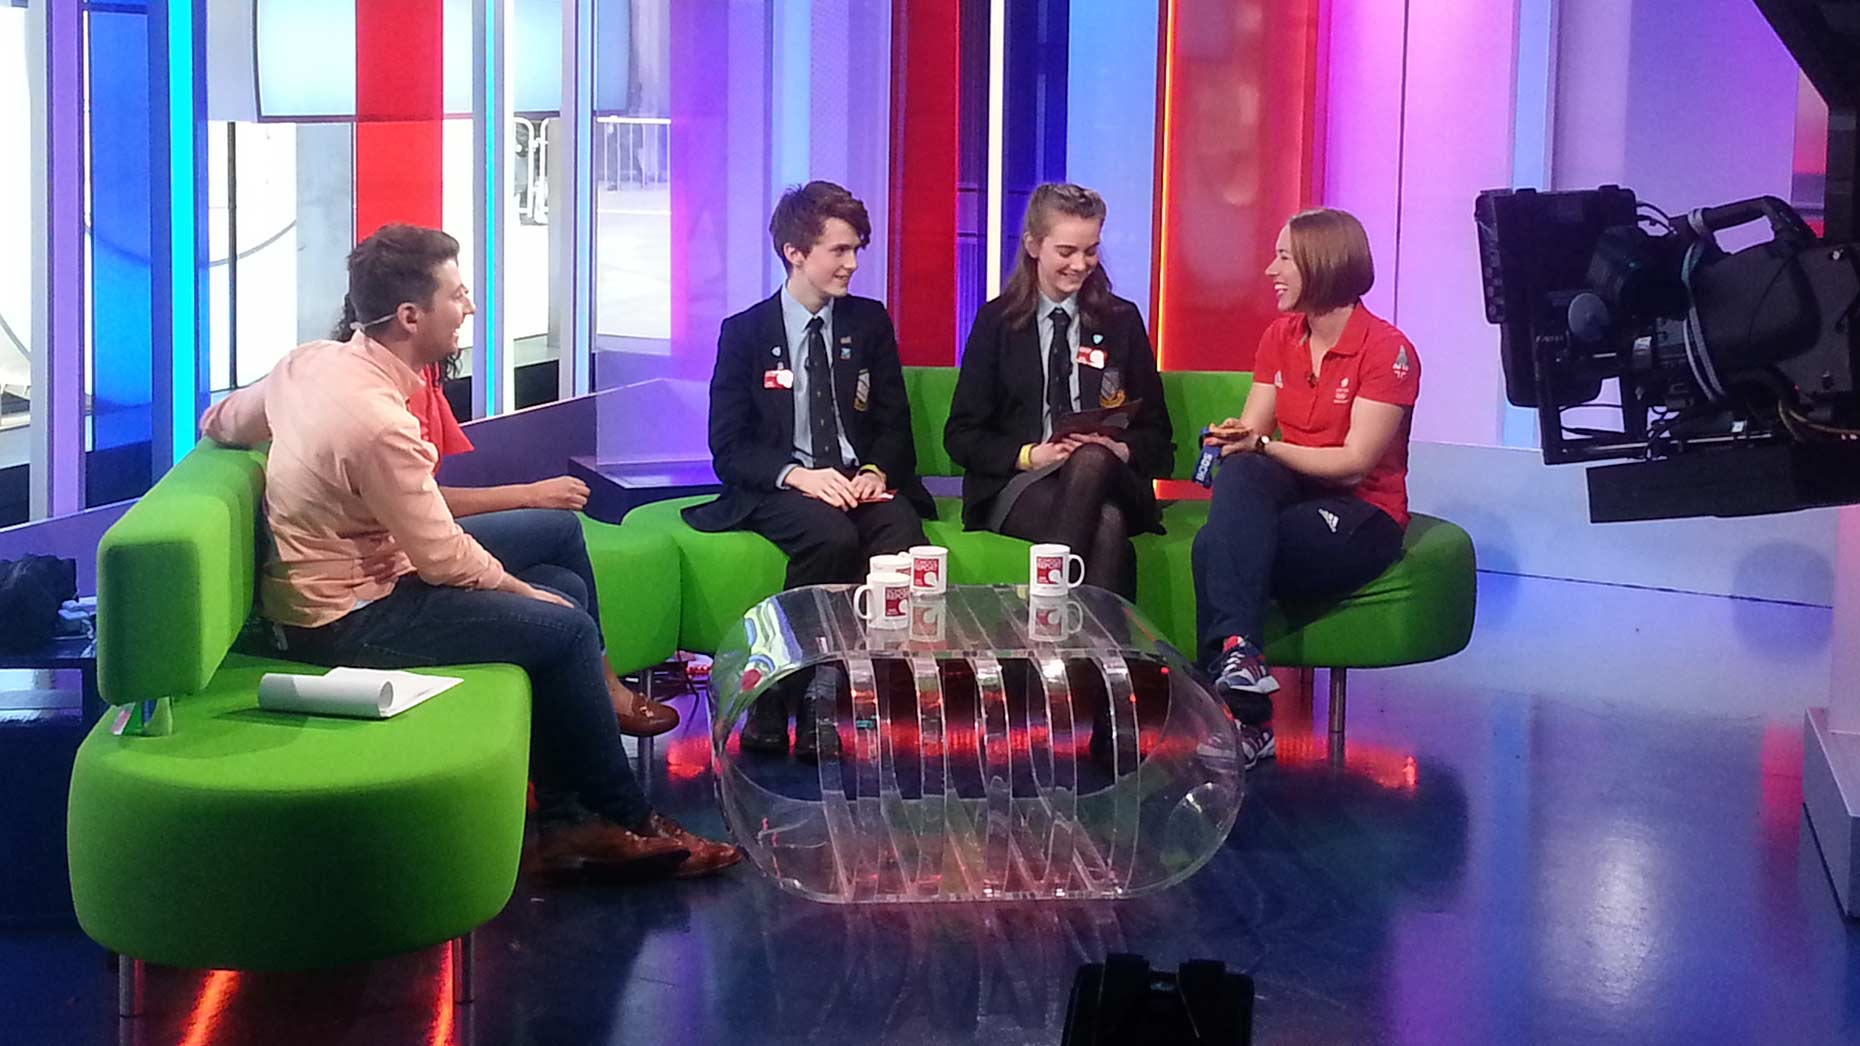 Lincoln School Pupils Appear On Bbc One Show